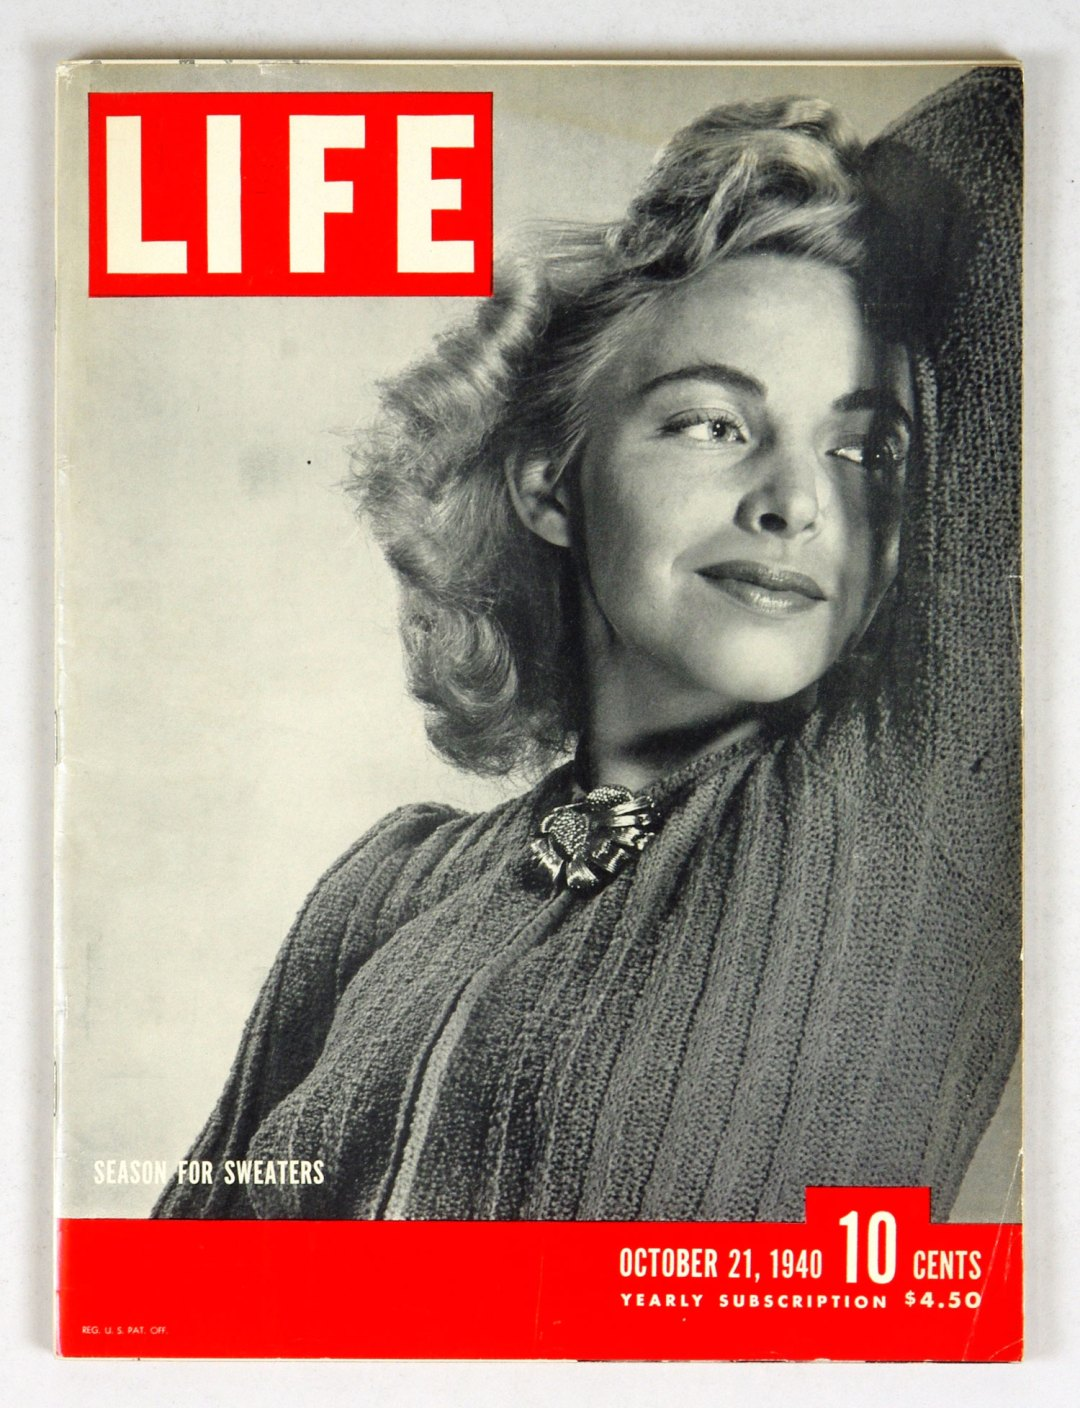 LIFE Magazine 1940 October 21 Season for Sweaters